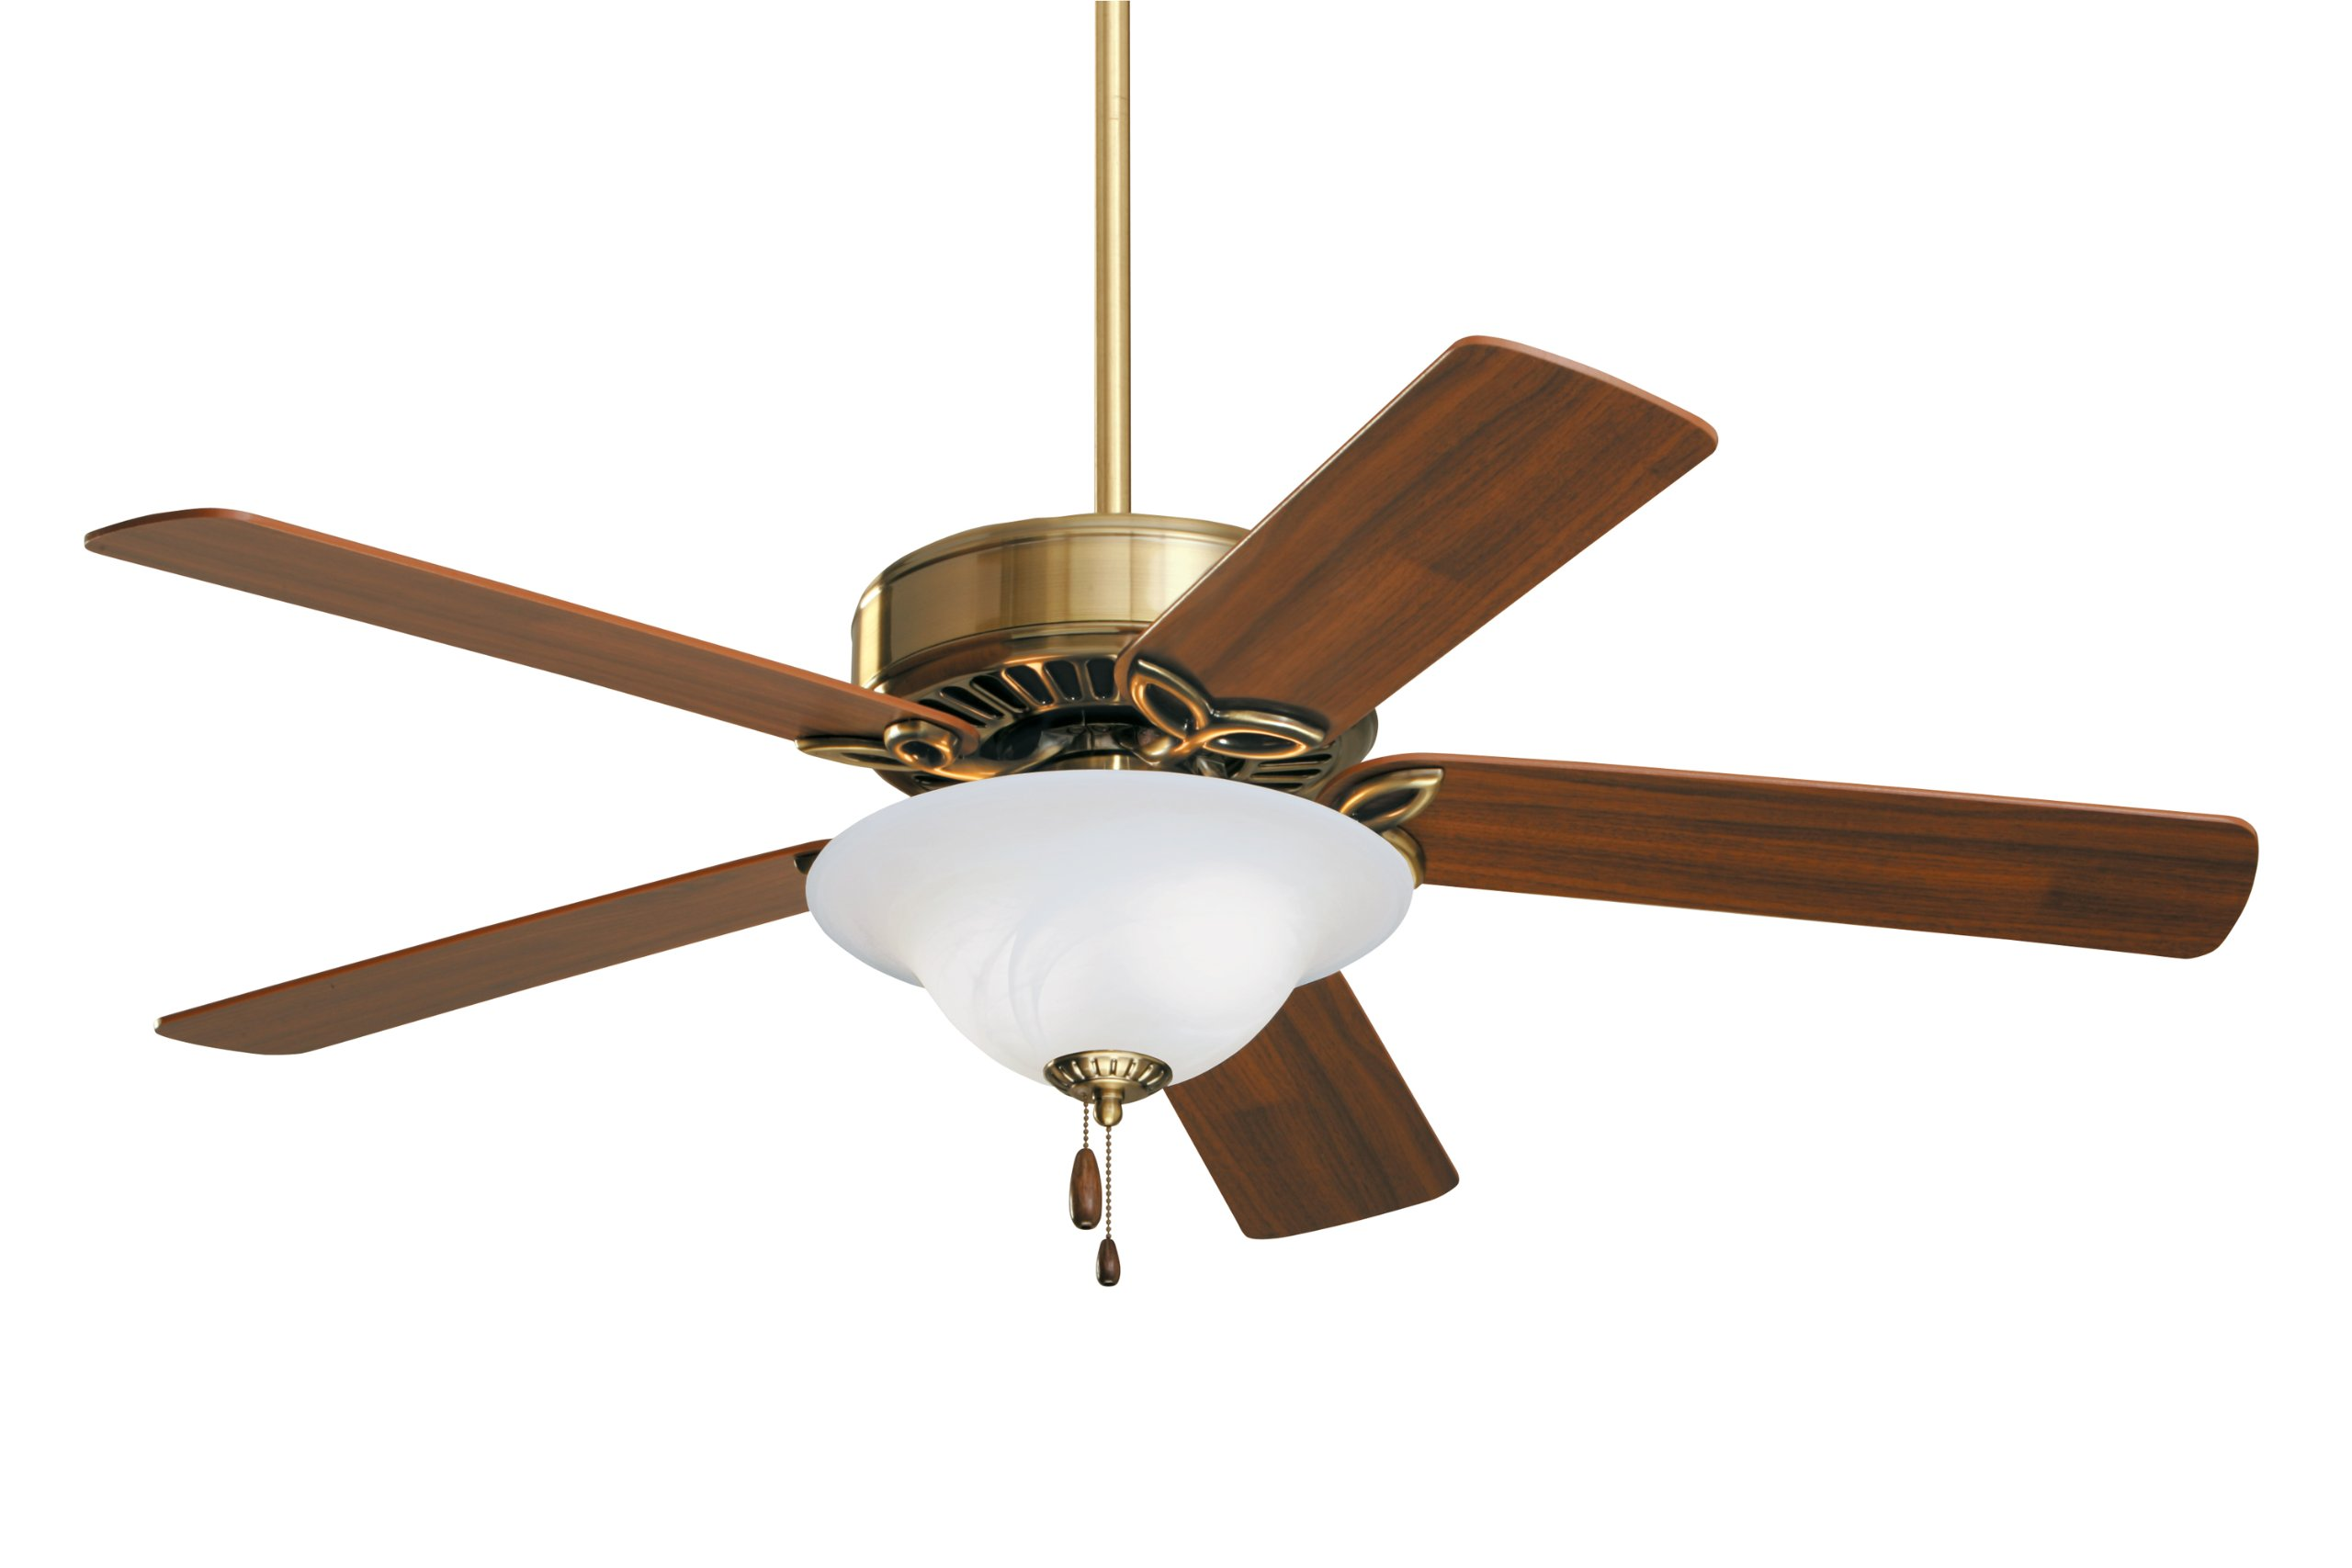 Emerson Ceiling Fans CF712AB Pro Series Indoor Ceiling Fan With Light, 50-Inch Blades, Antique Brass Finish